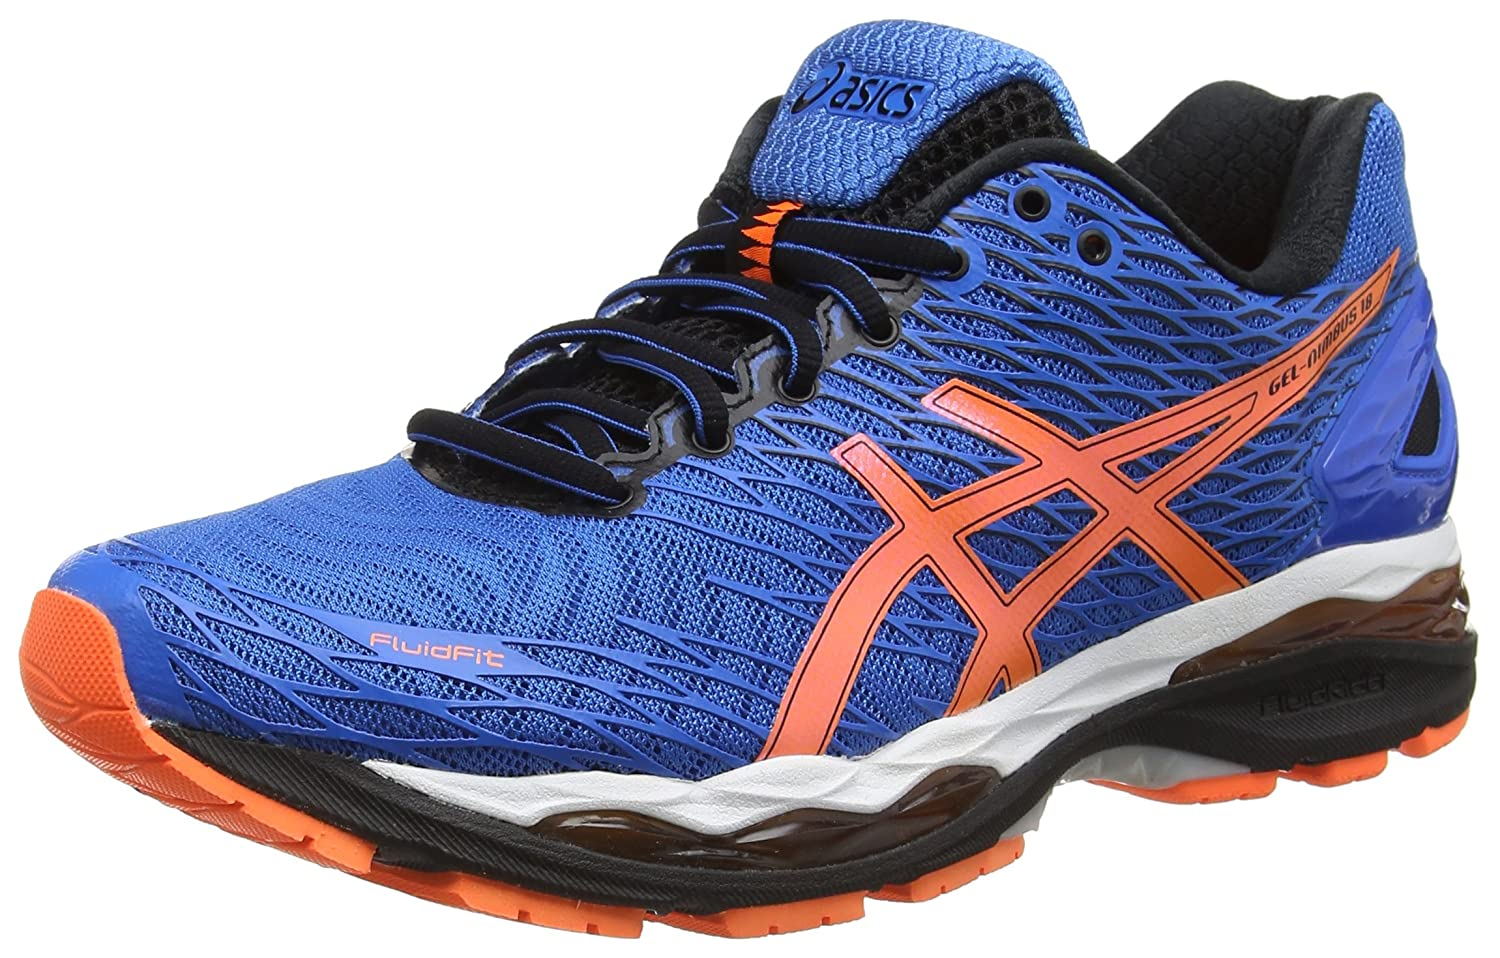 Amazon.com: ASICS Gel-Nimbus Mens Running Shoes Blue T600N 3930, Size:44.5: Shoes